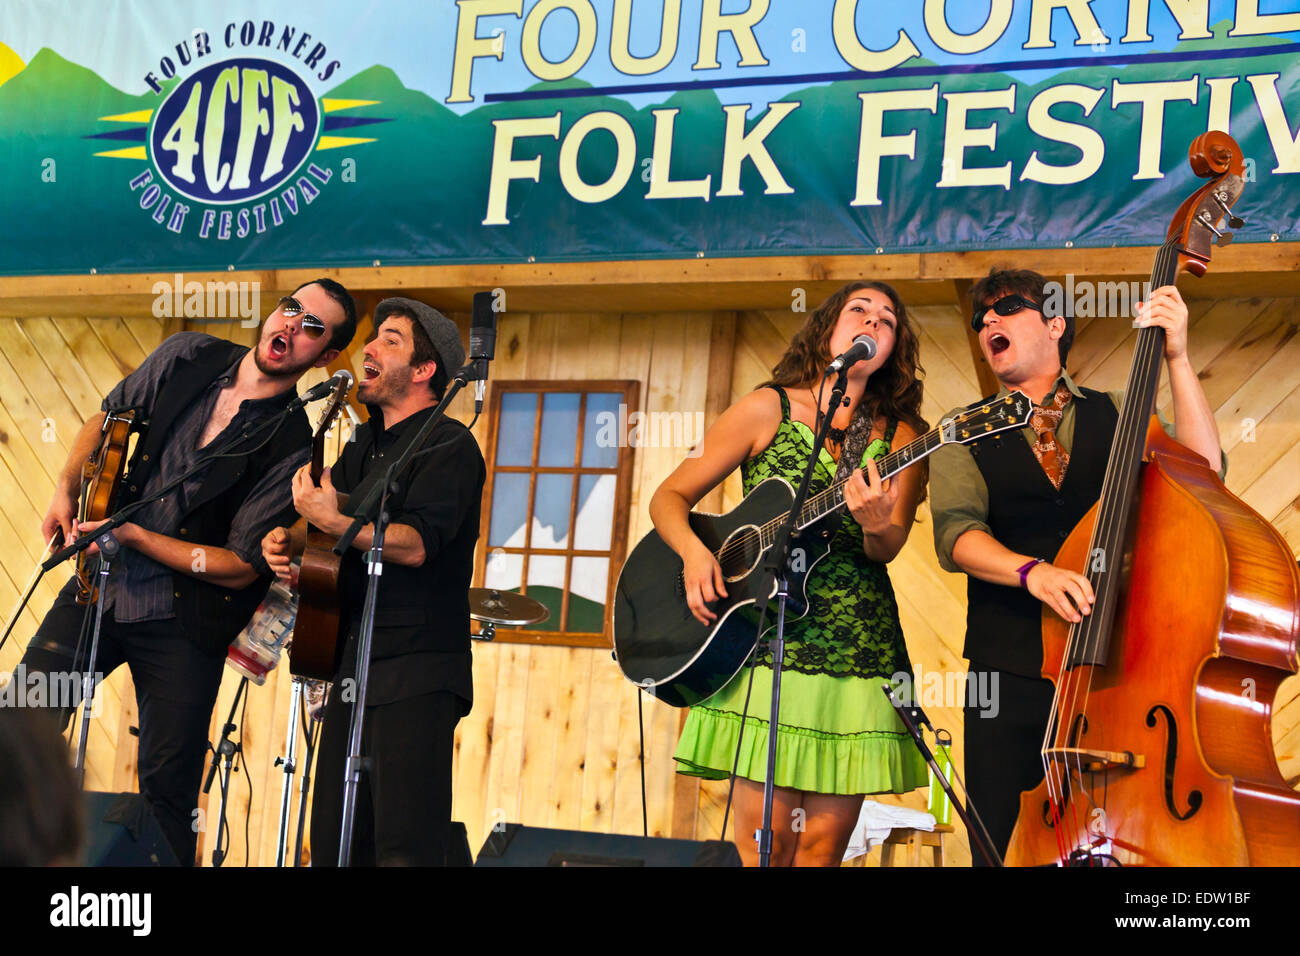 CARAVAN OF THIEVES performs at the 2014 FOUR CORNERS FOLK FESTIVAL - COLORADO - Stock Image